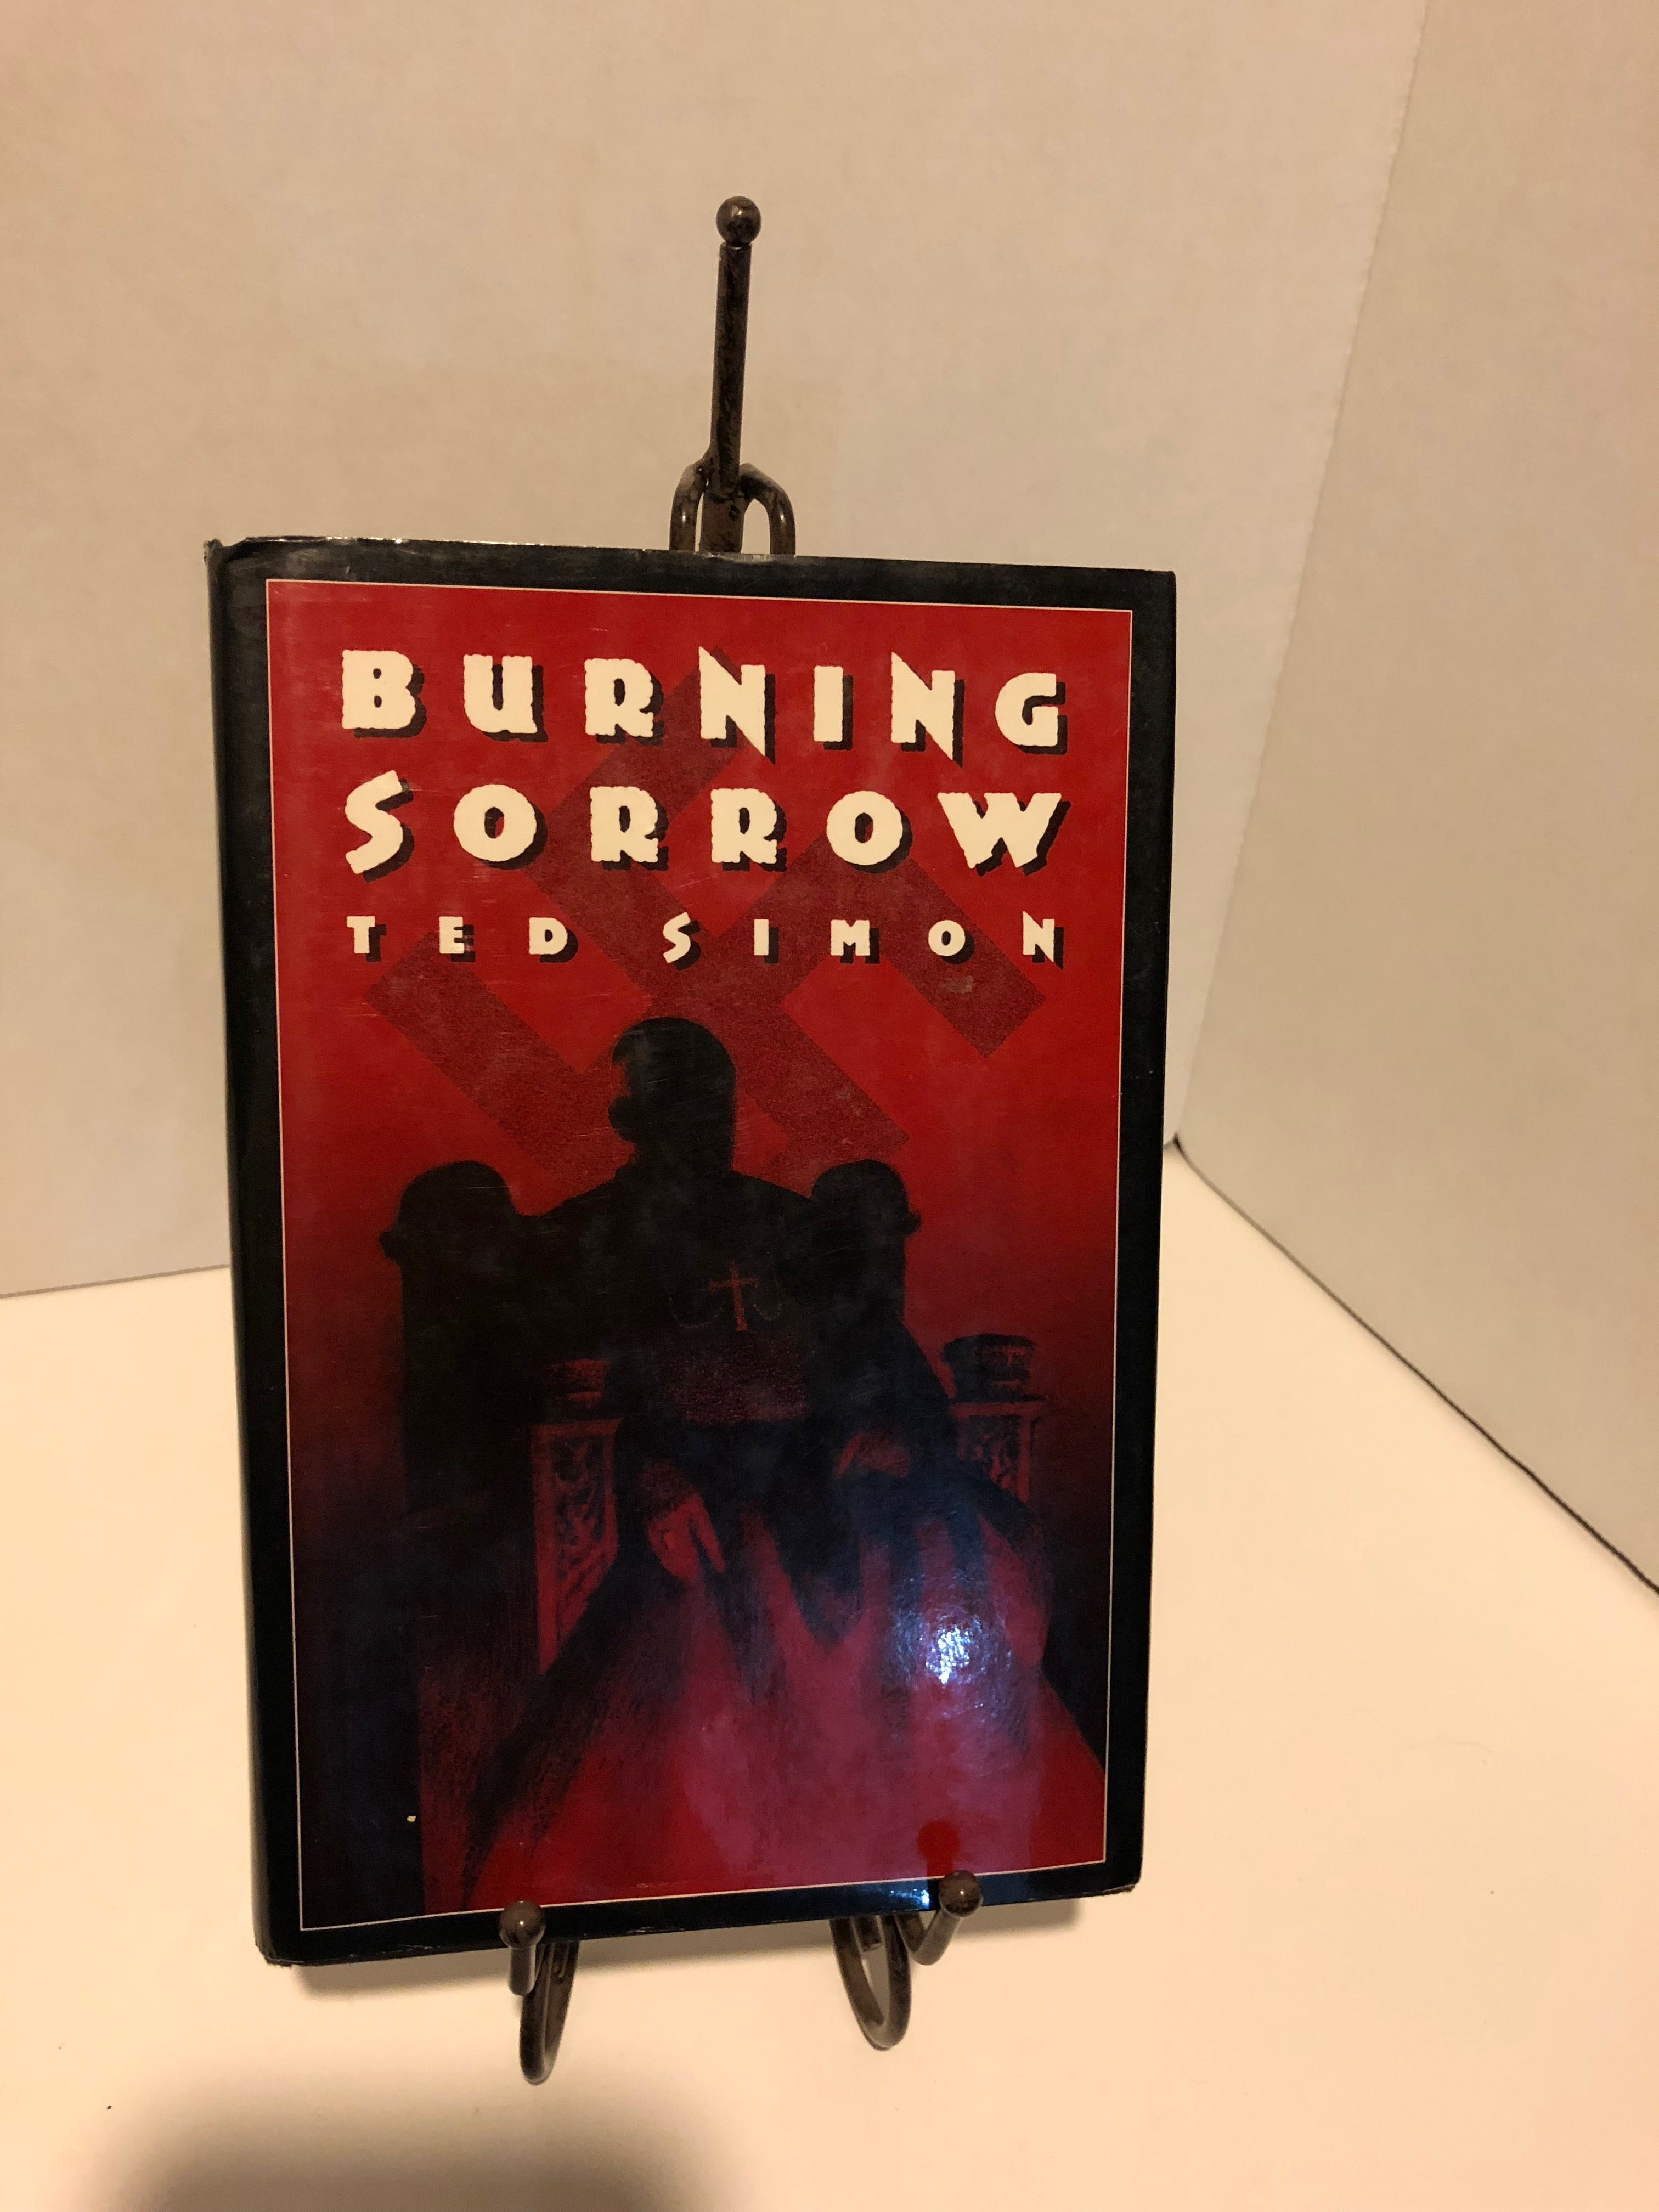 Burning Sorrow